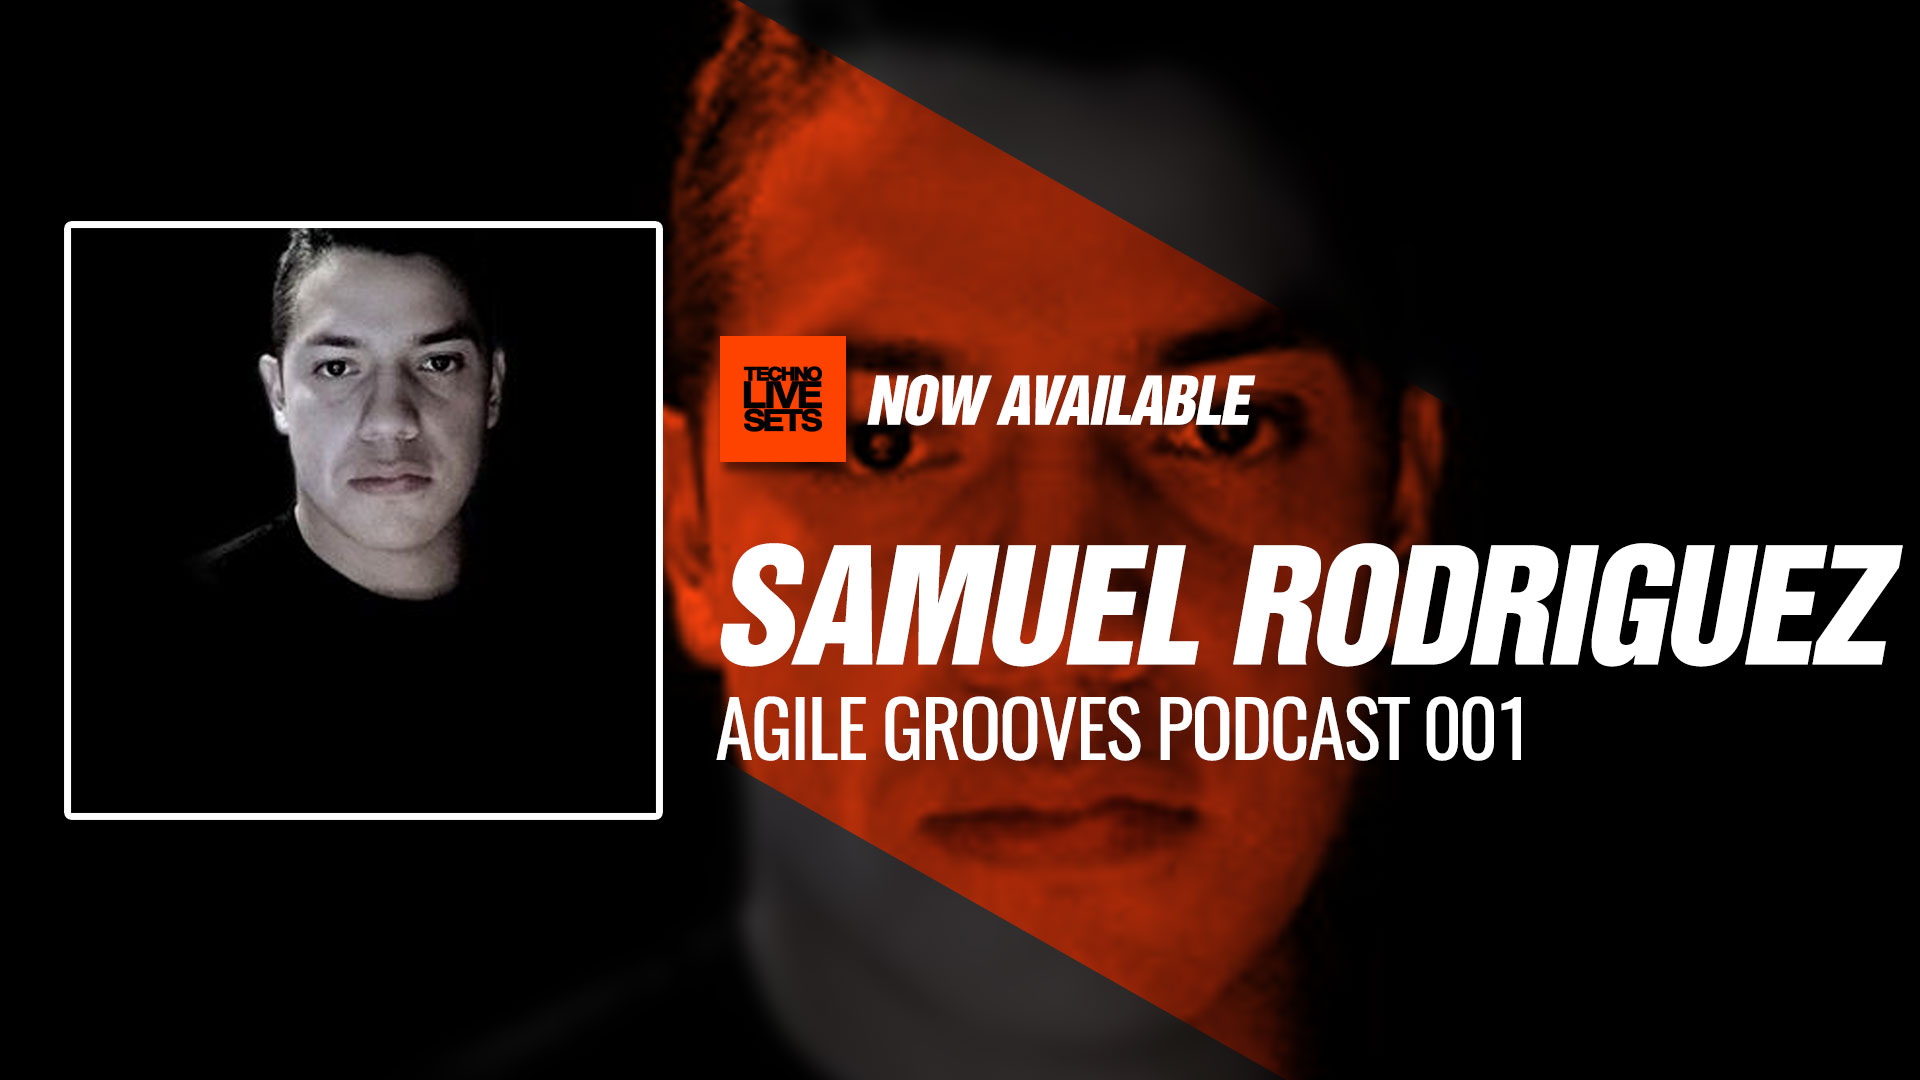 Samuel rodriguez 2017 agile grooves podcast 001 21 10 2017 for Trossingen canape